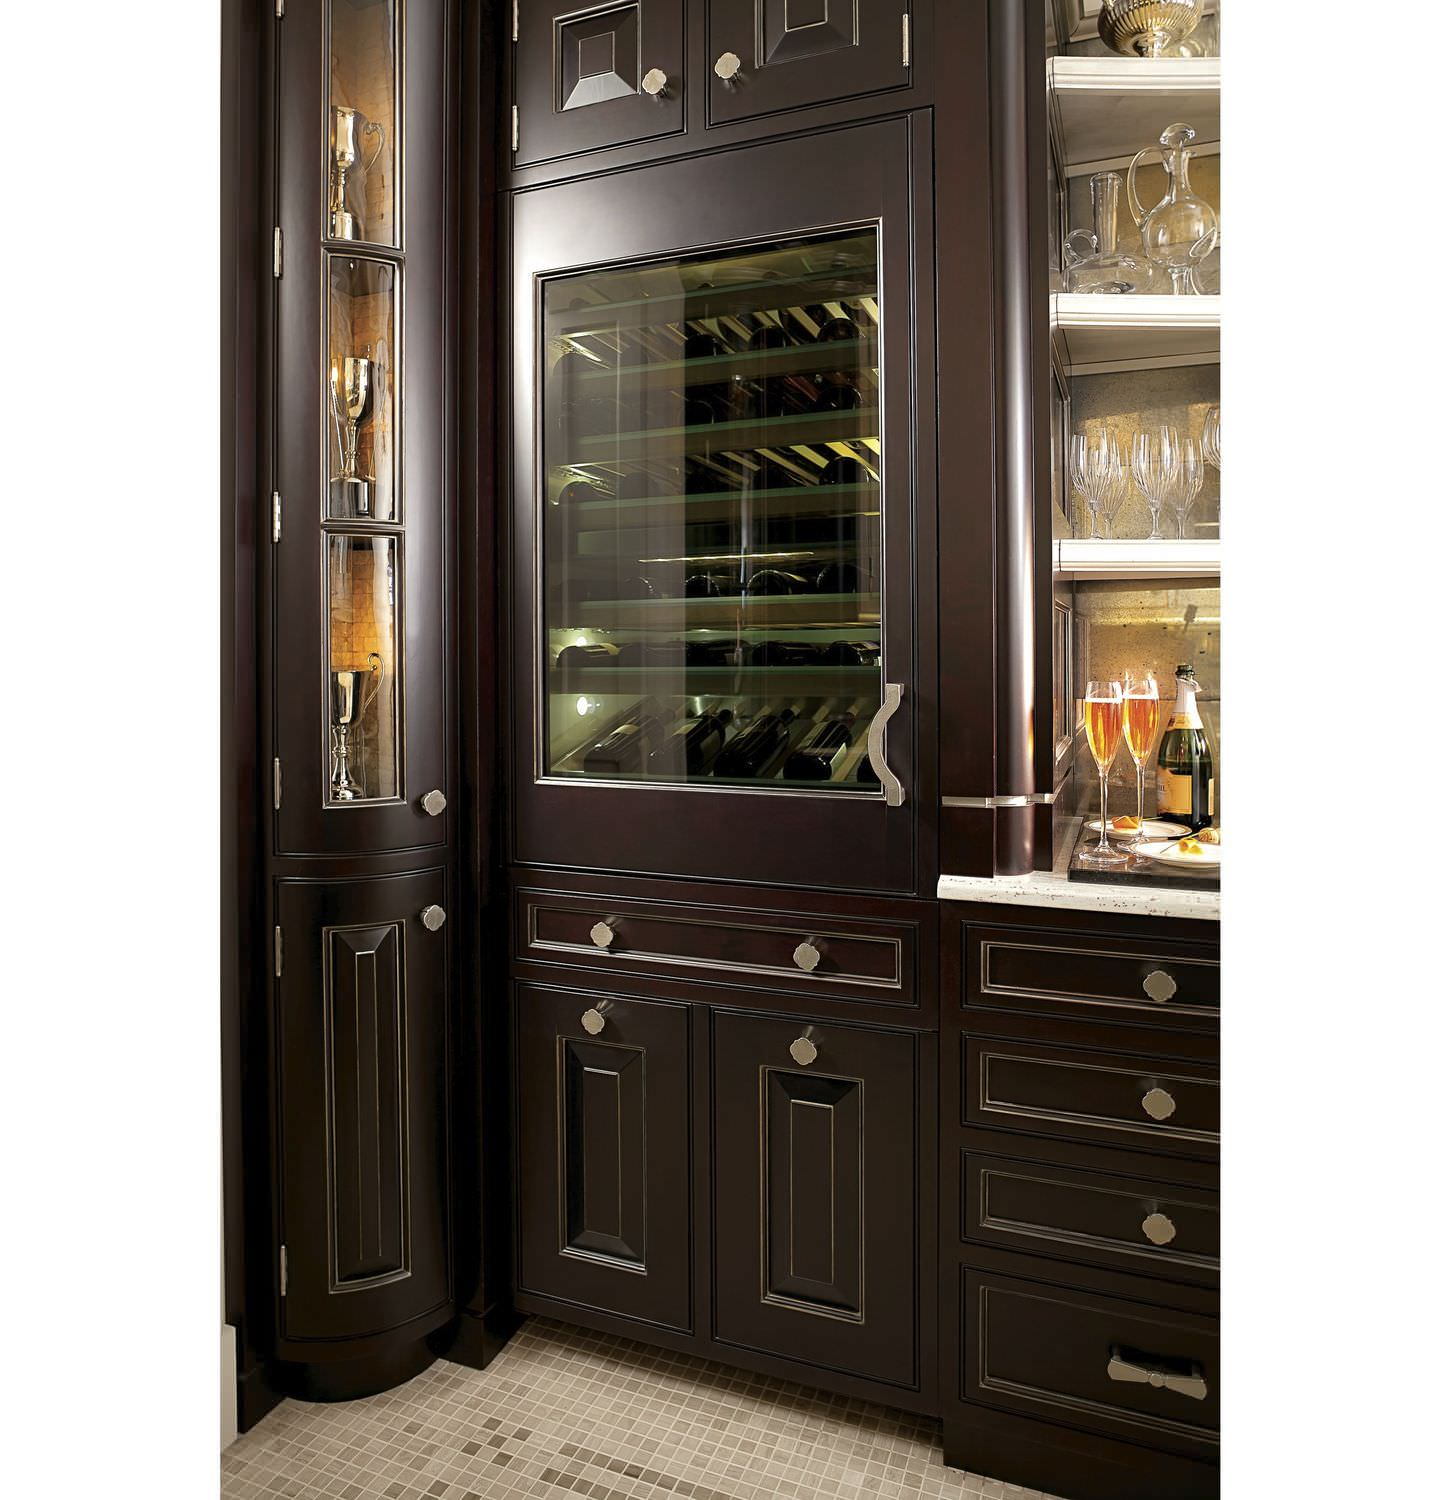 Integrated Wine Cabinet Commercial Wine Cabinet Built In Stainless Steel Glazed